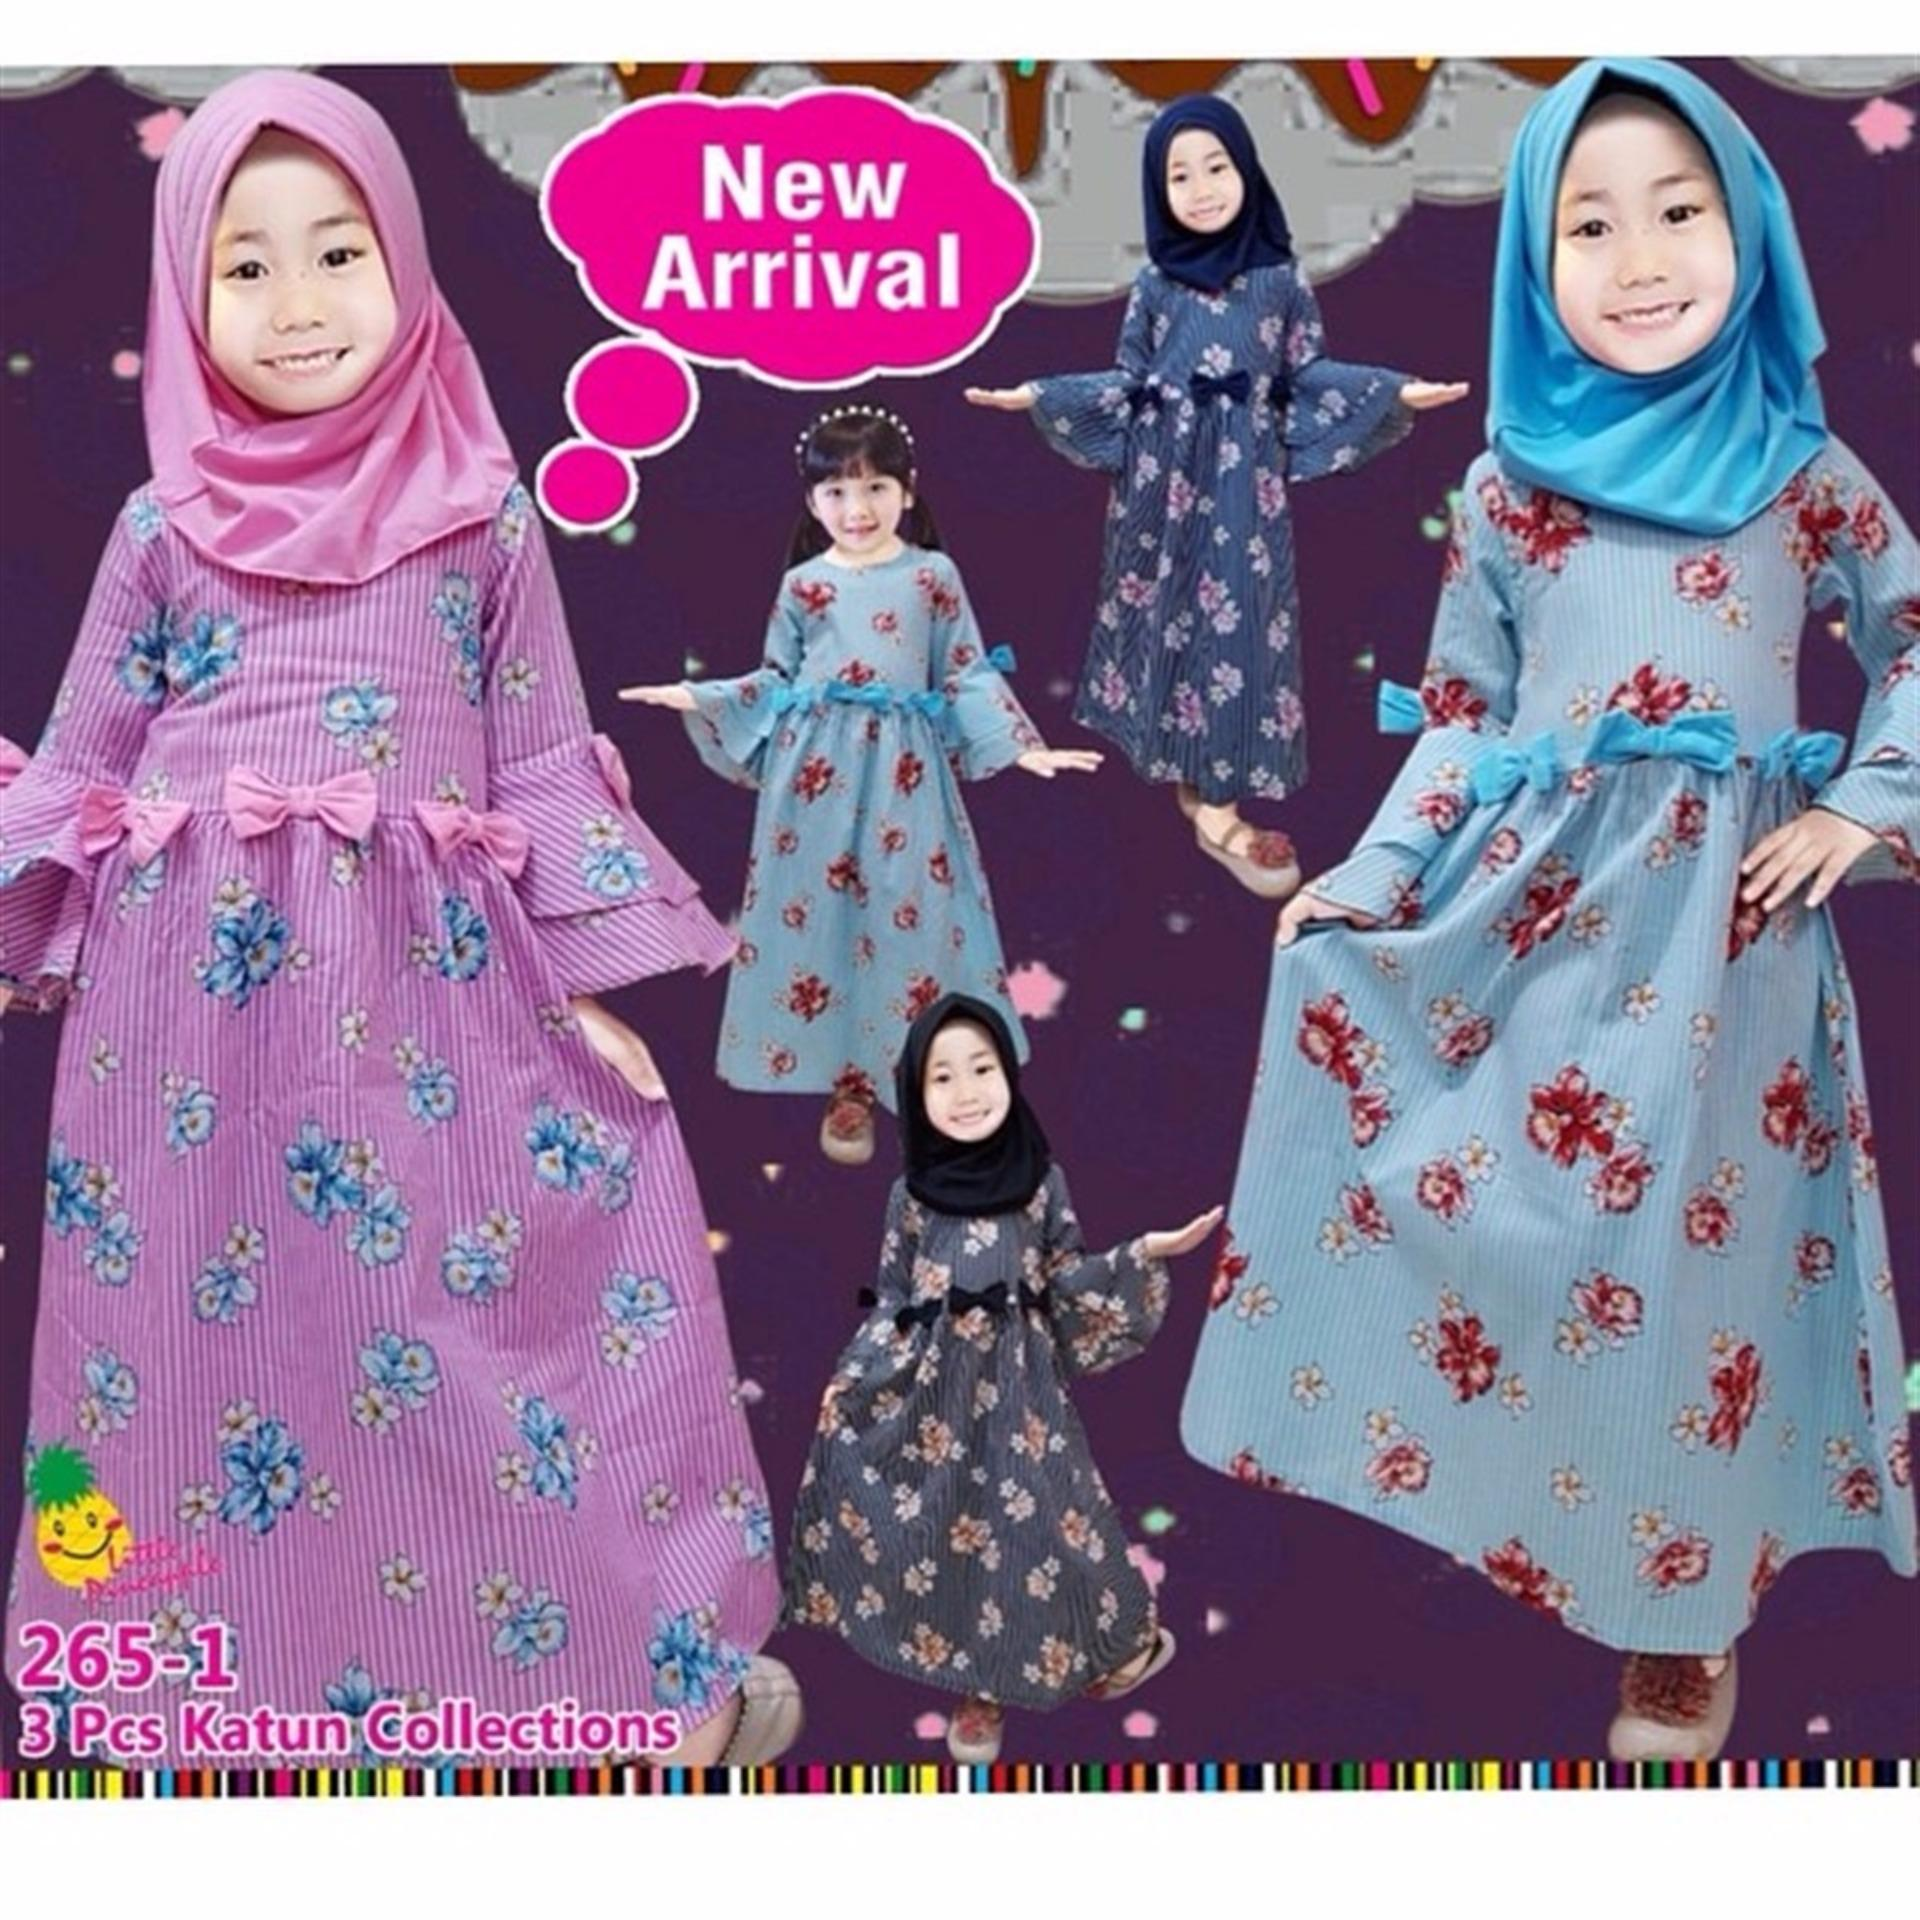 Little pineapple 2in1 Flower Gamis Dress Muslim Hijab Anak 3-8tahun